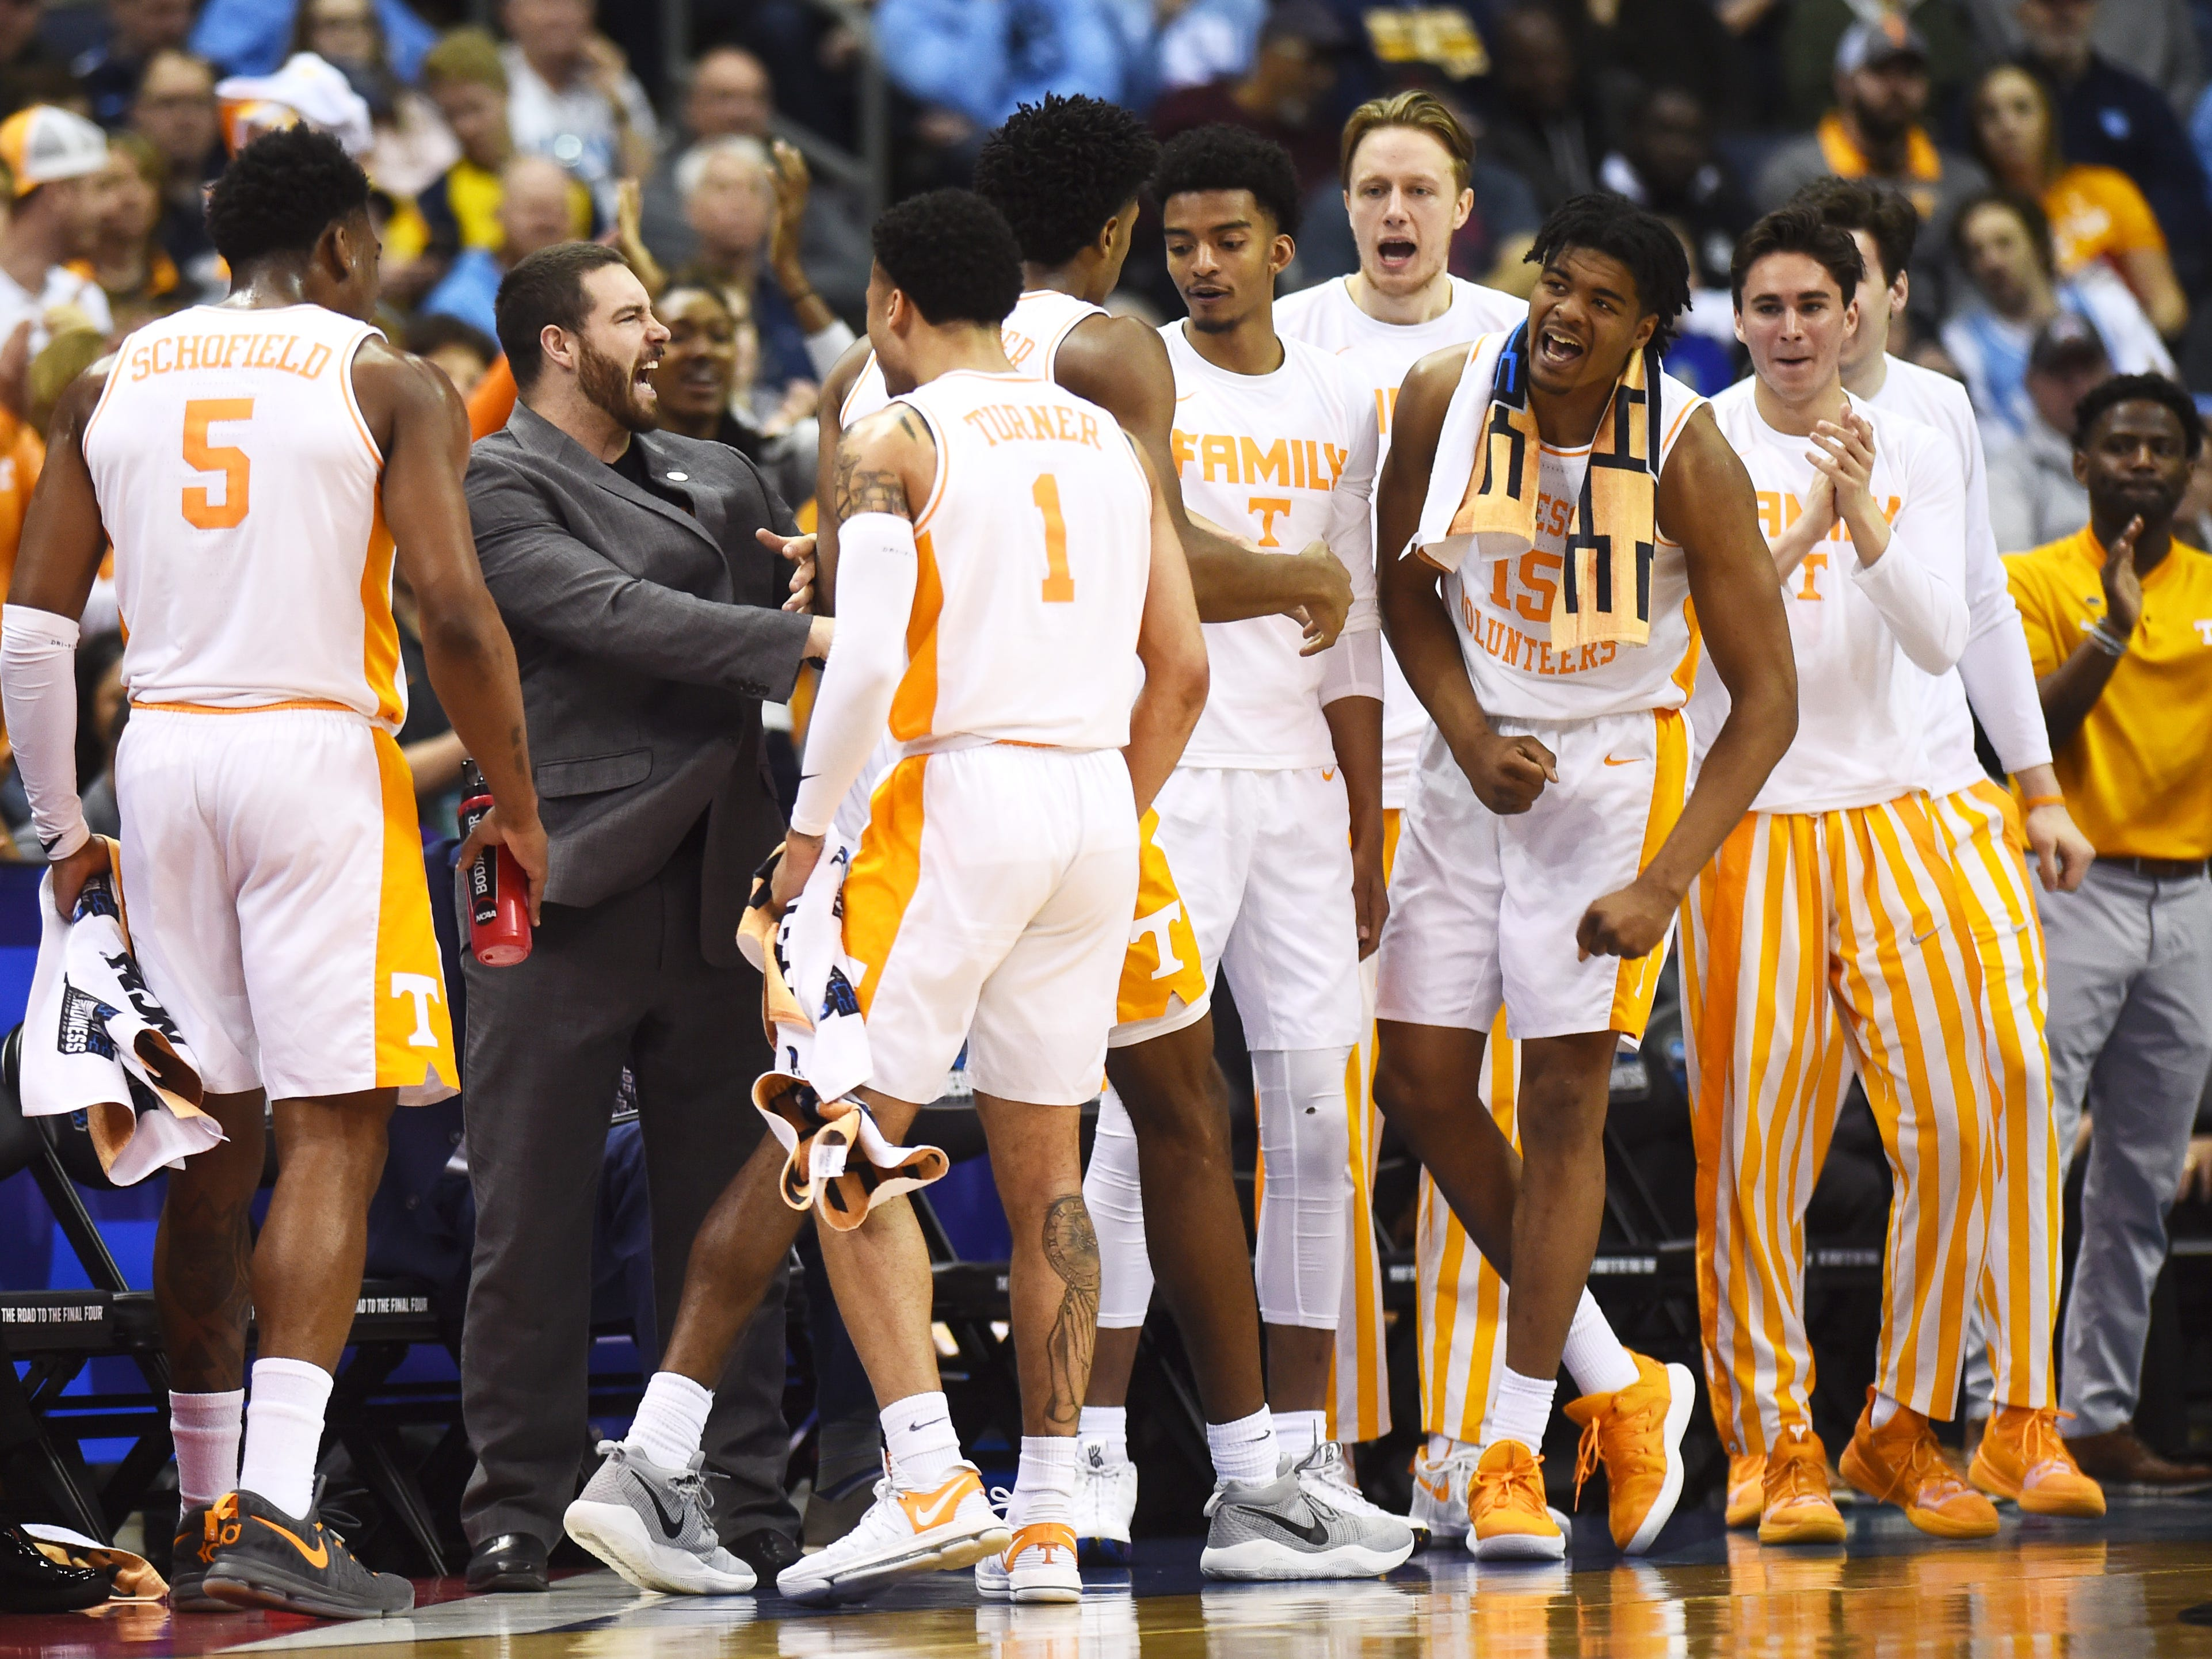 The Tennessee bench celebrates late in the first half of the game against the Iowa Hawkeyes in the second round of the NCAA Tournament at Nationwide Arena in Columbus, Ohio, Sunday, March 24, 2019.